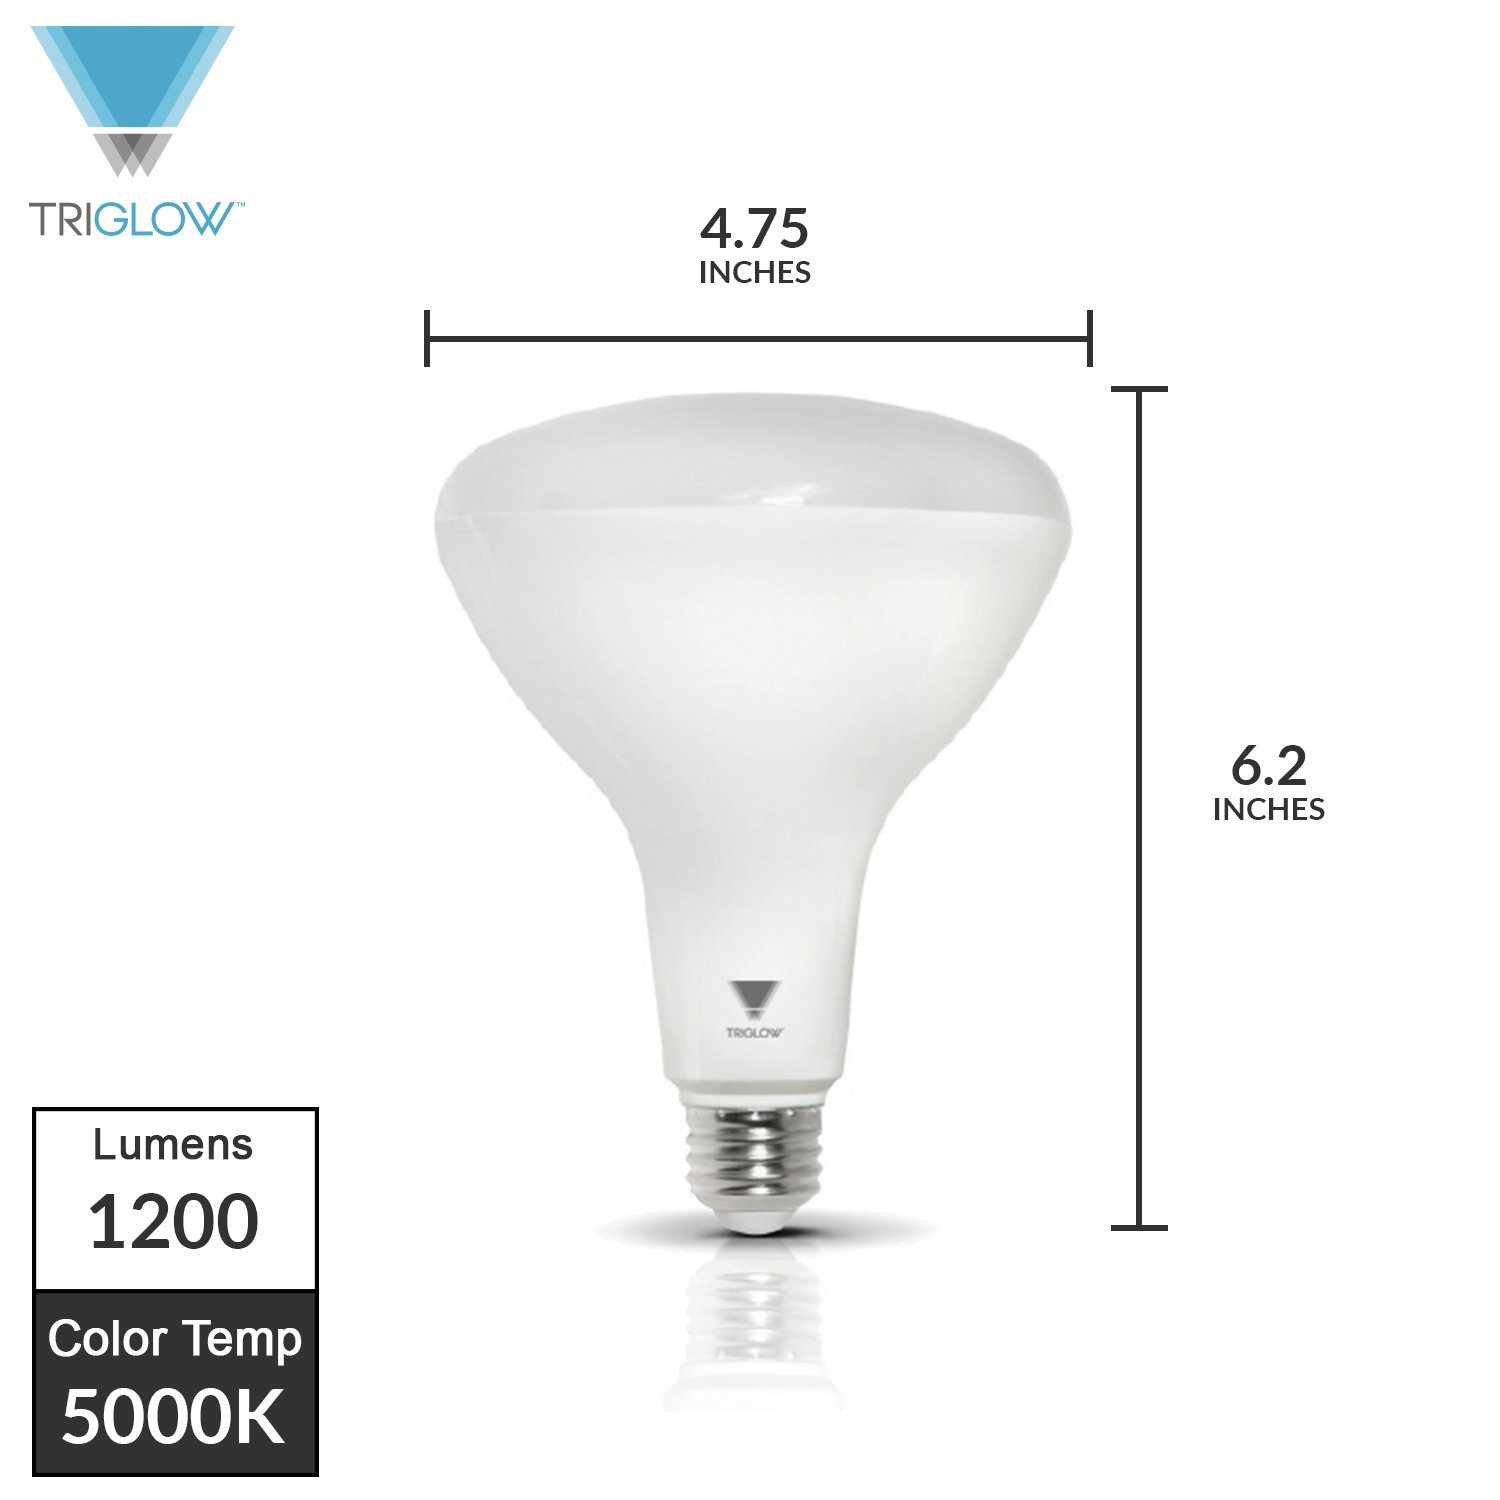 Office Flood Light Dimmable 1200 Lumens Indoor//Outdoor 25000 Hrs UL Listed Use in Home TriGlow BR40 LED Light Bulb 15 Watt 100 Equivalent Soft White , 6-Pack 3000K